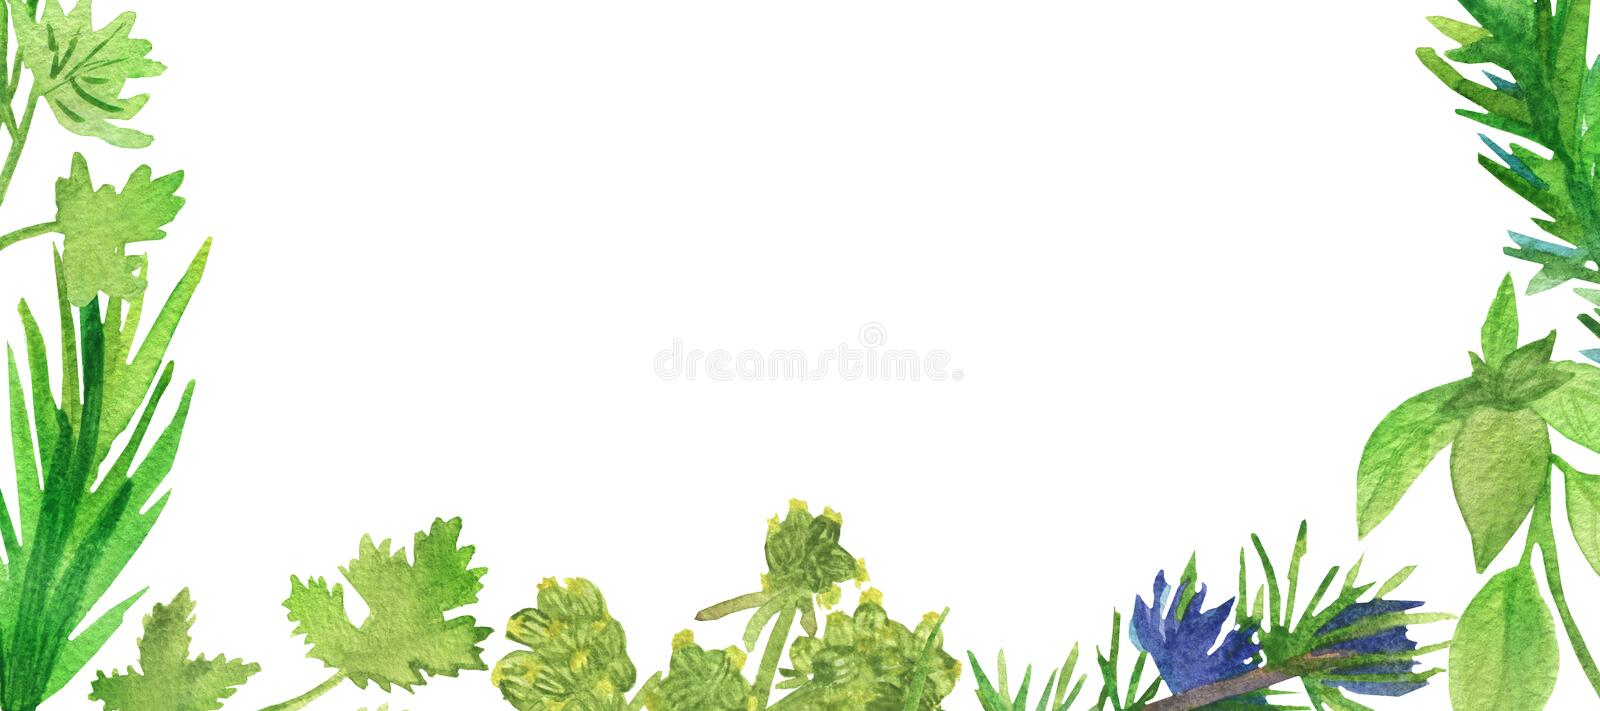 Watercolor banner of spicy plants. Green seasoning plants isolated on white background. Spicy herbs: coriander, rosemary, parsley. Marjoram, for beautiful royalty free illustration